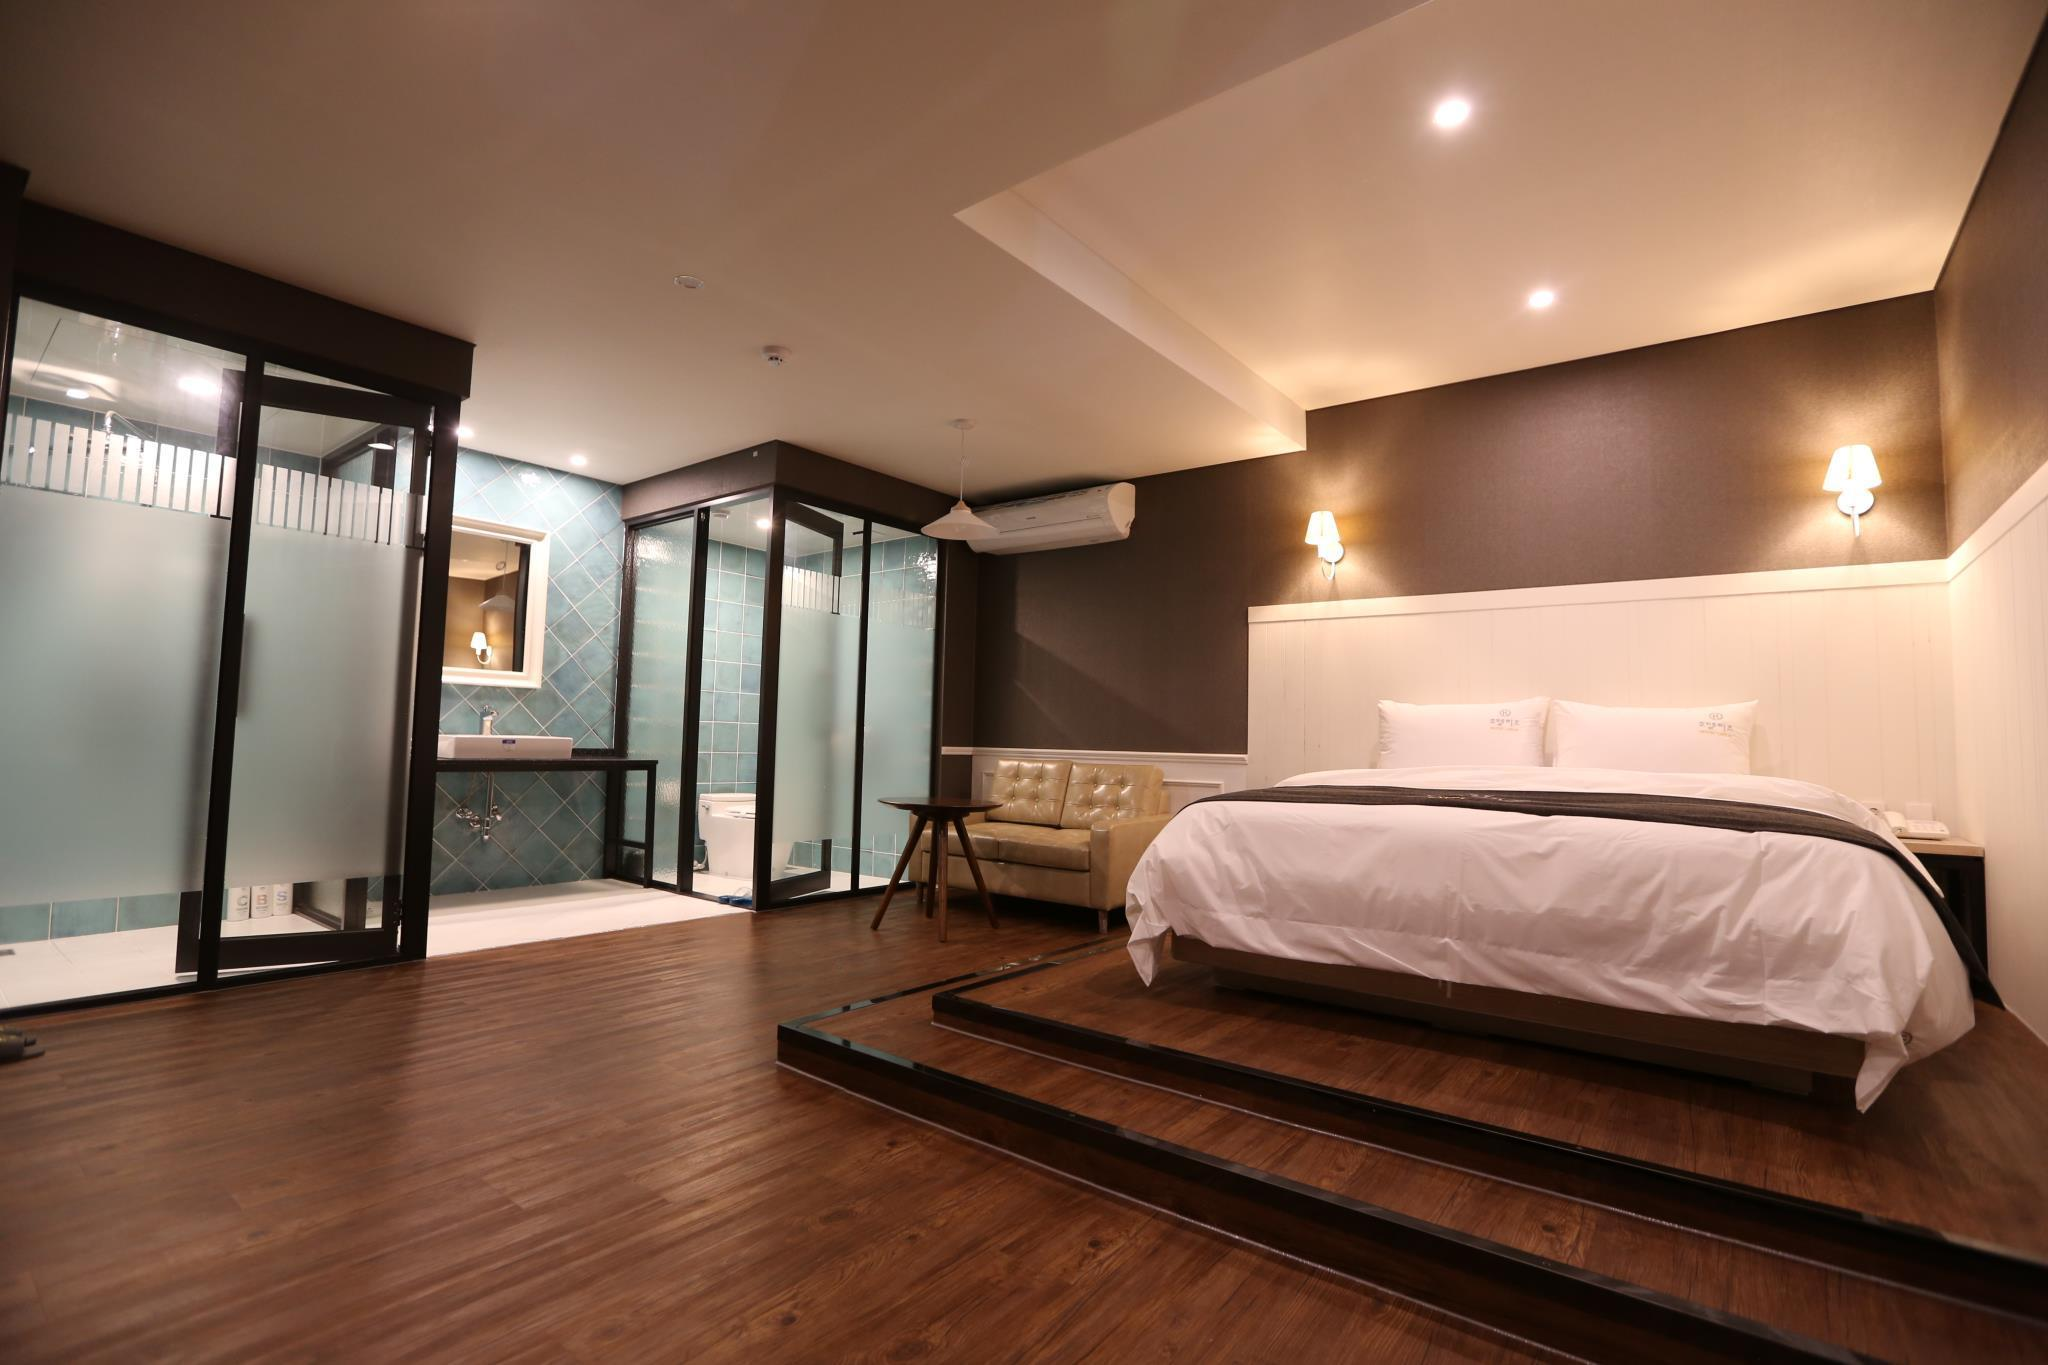 Best price on hotel leeds in pyeongtaek si reviews for Boutique hotel xym pyeongtaek